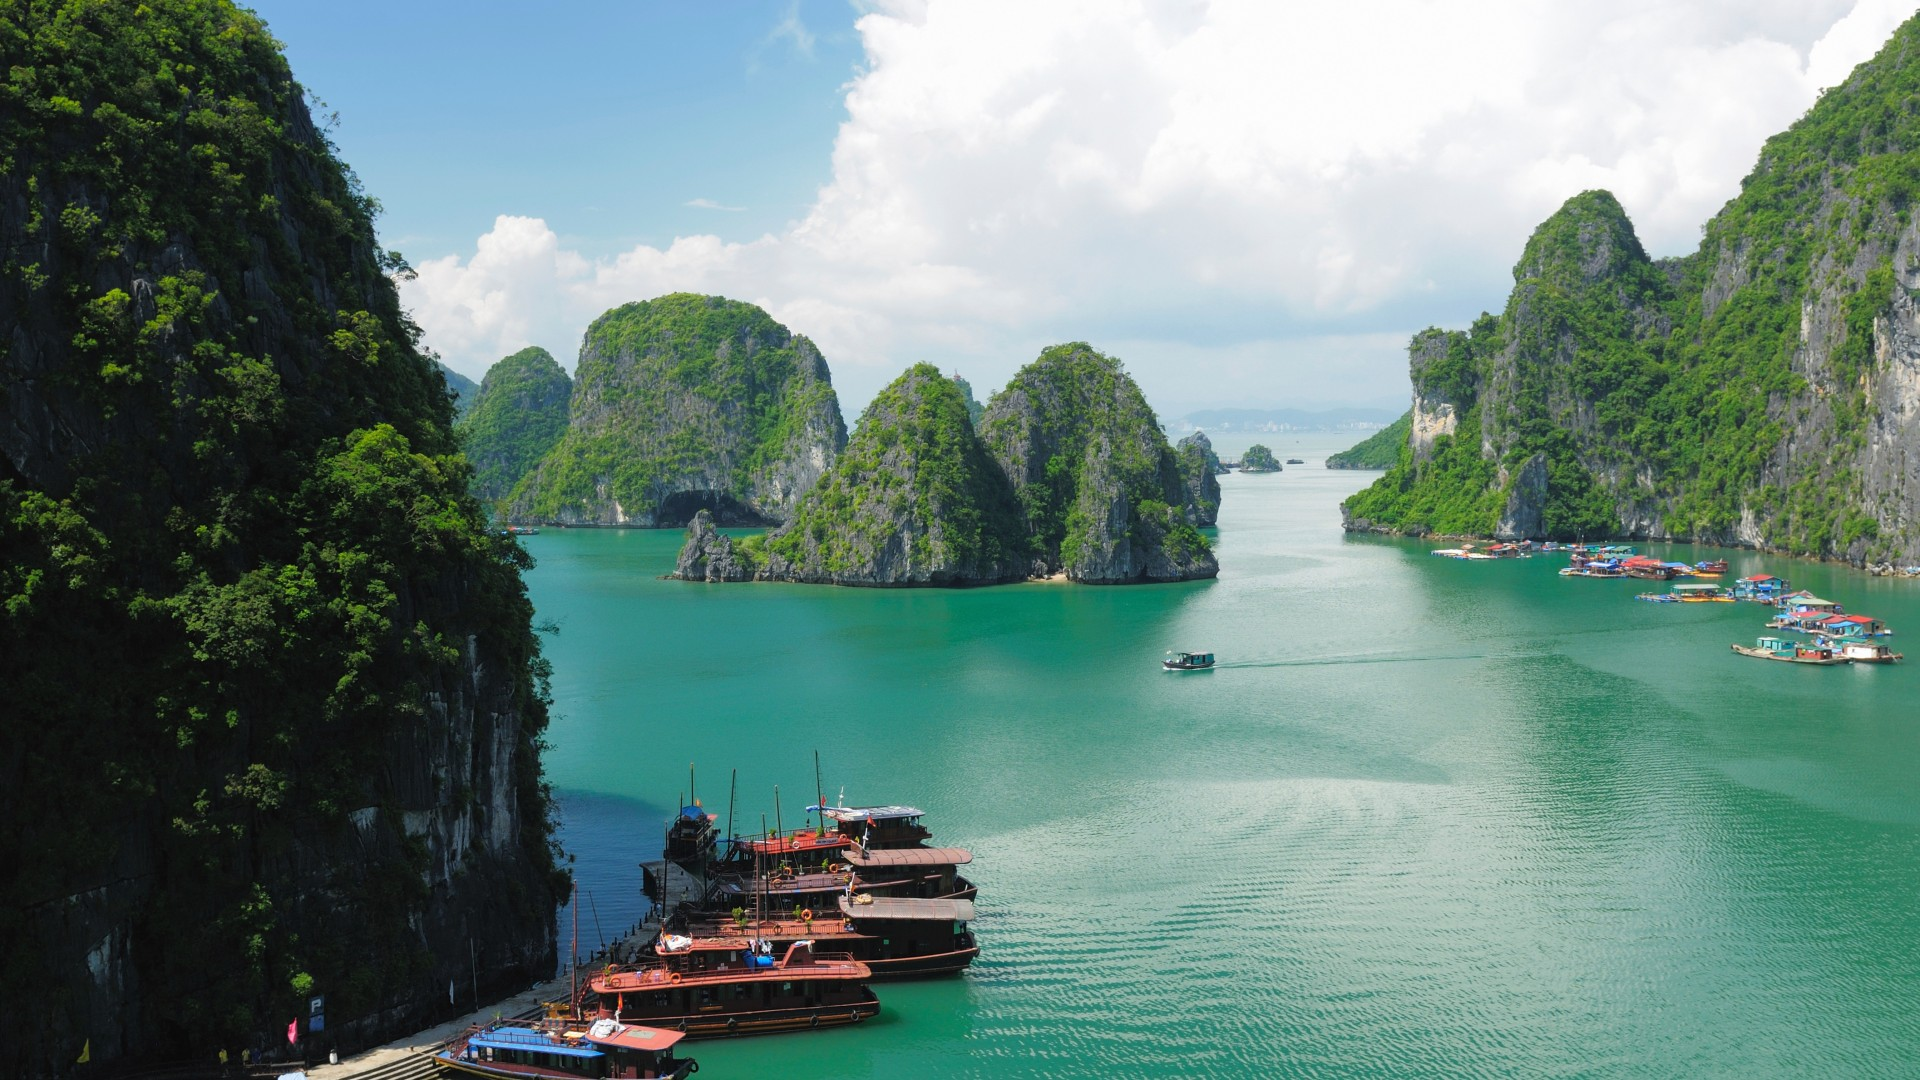 Ha Long Bay, 5k, 4k wallpaper, 8k, Halong Bay, Vietnam, mountains, cruise, travel, rest, boat, river (horizontal)